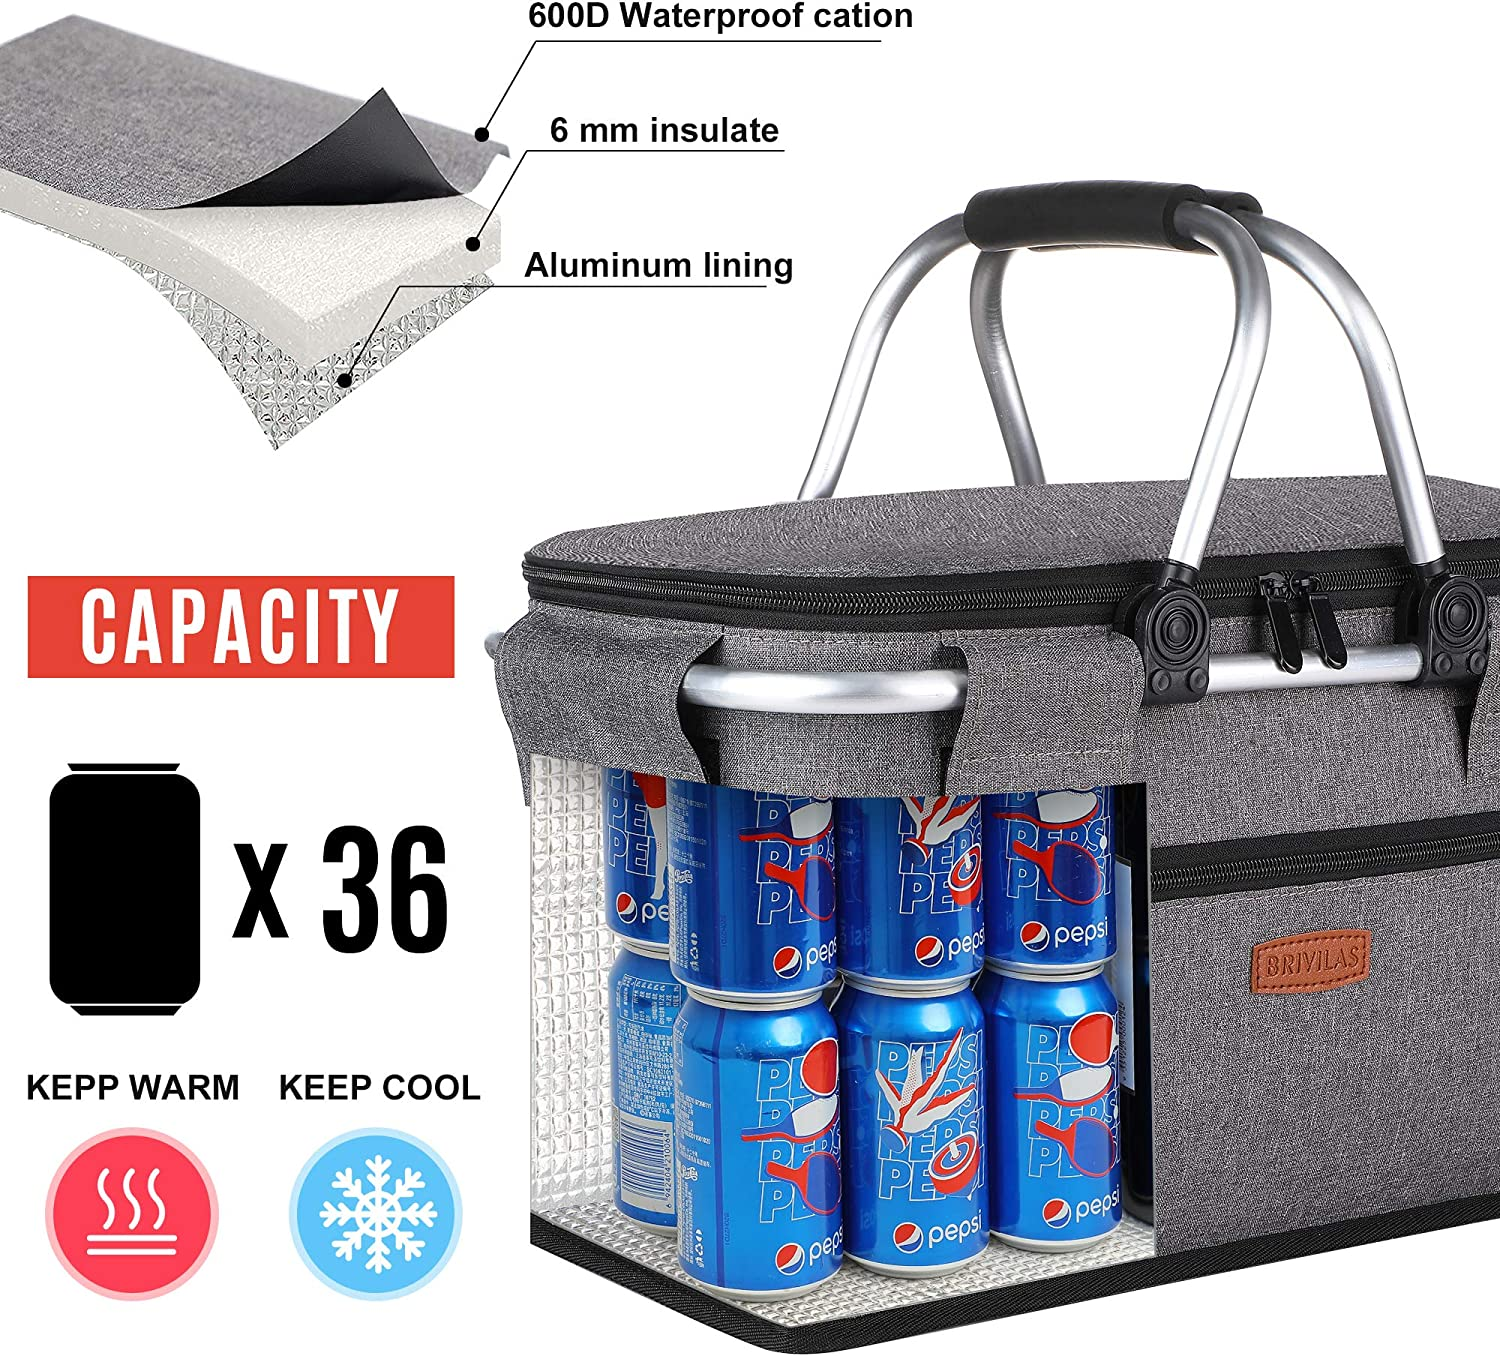 Travel Music Festival BRIVILAS Insulated Picnic Baskets-Collapsible Cooler Bag-Large Portable Laundry Basket//Grocery Bag Basket with Aluminium Handles for Shopping Camping Black